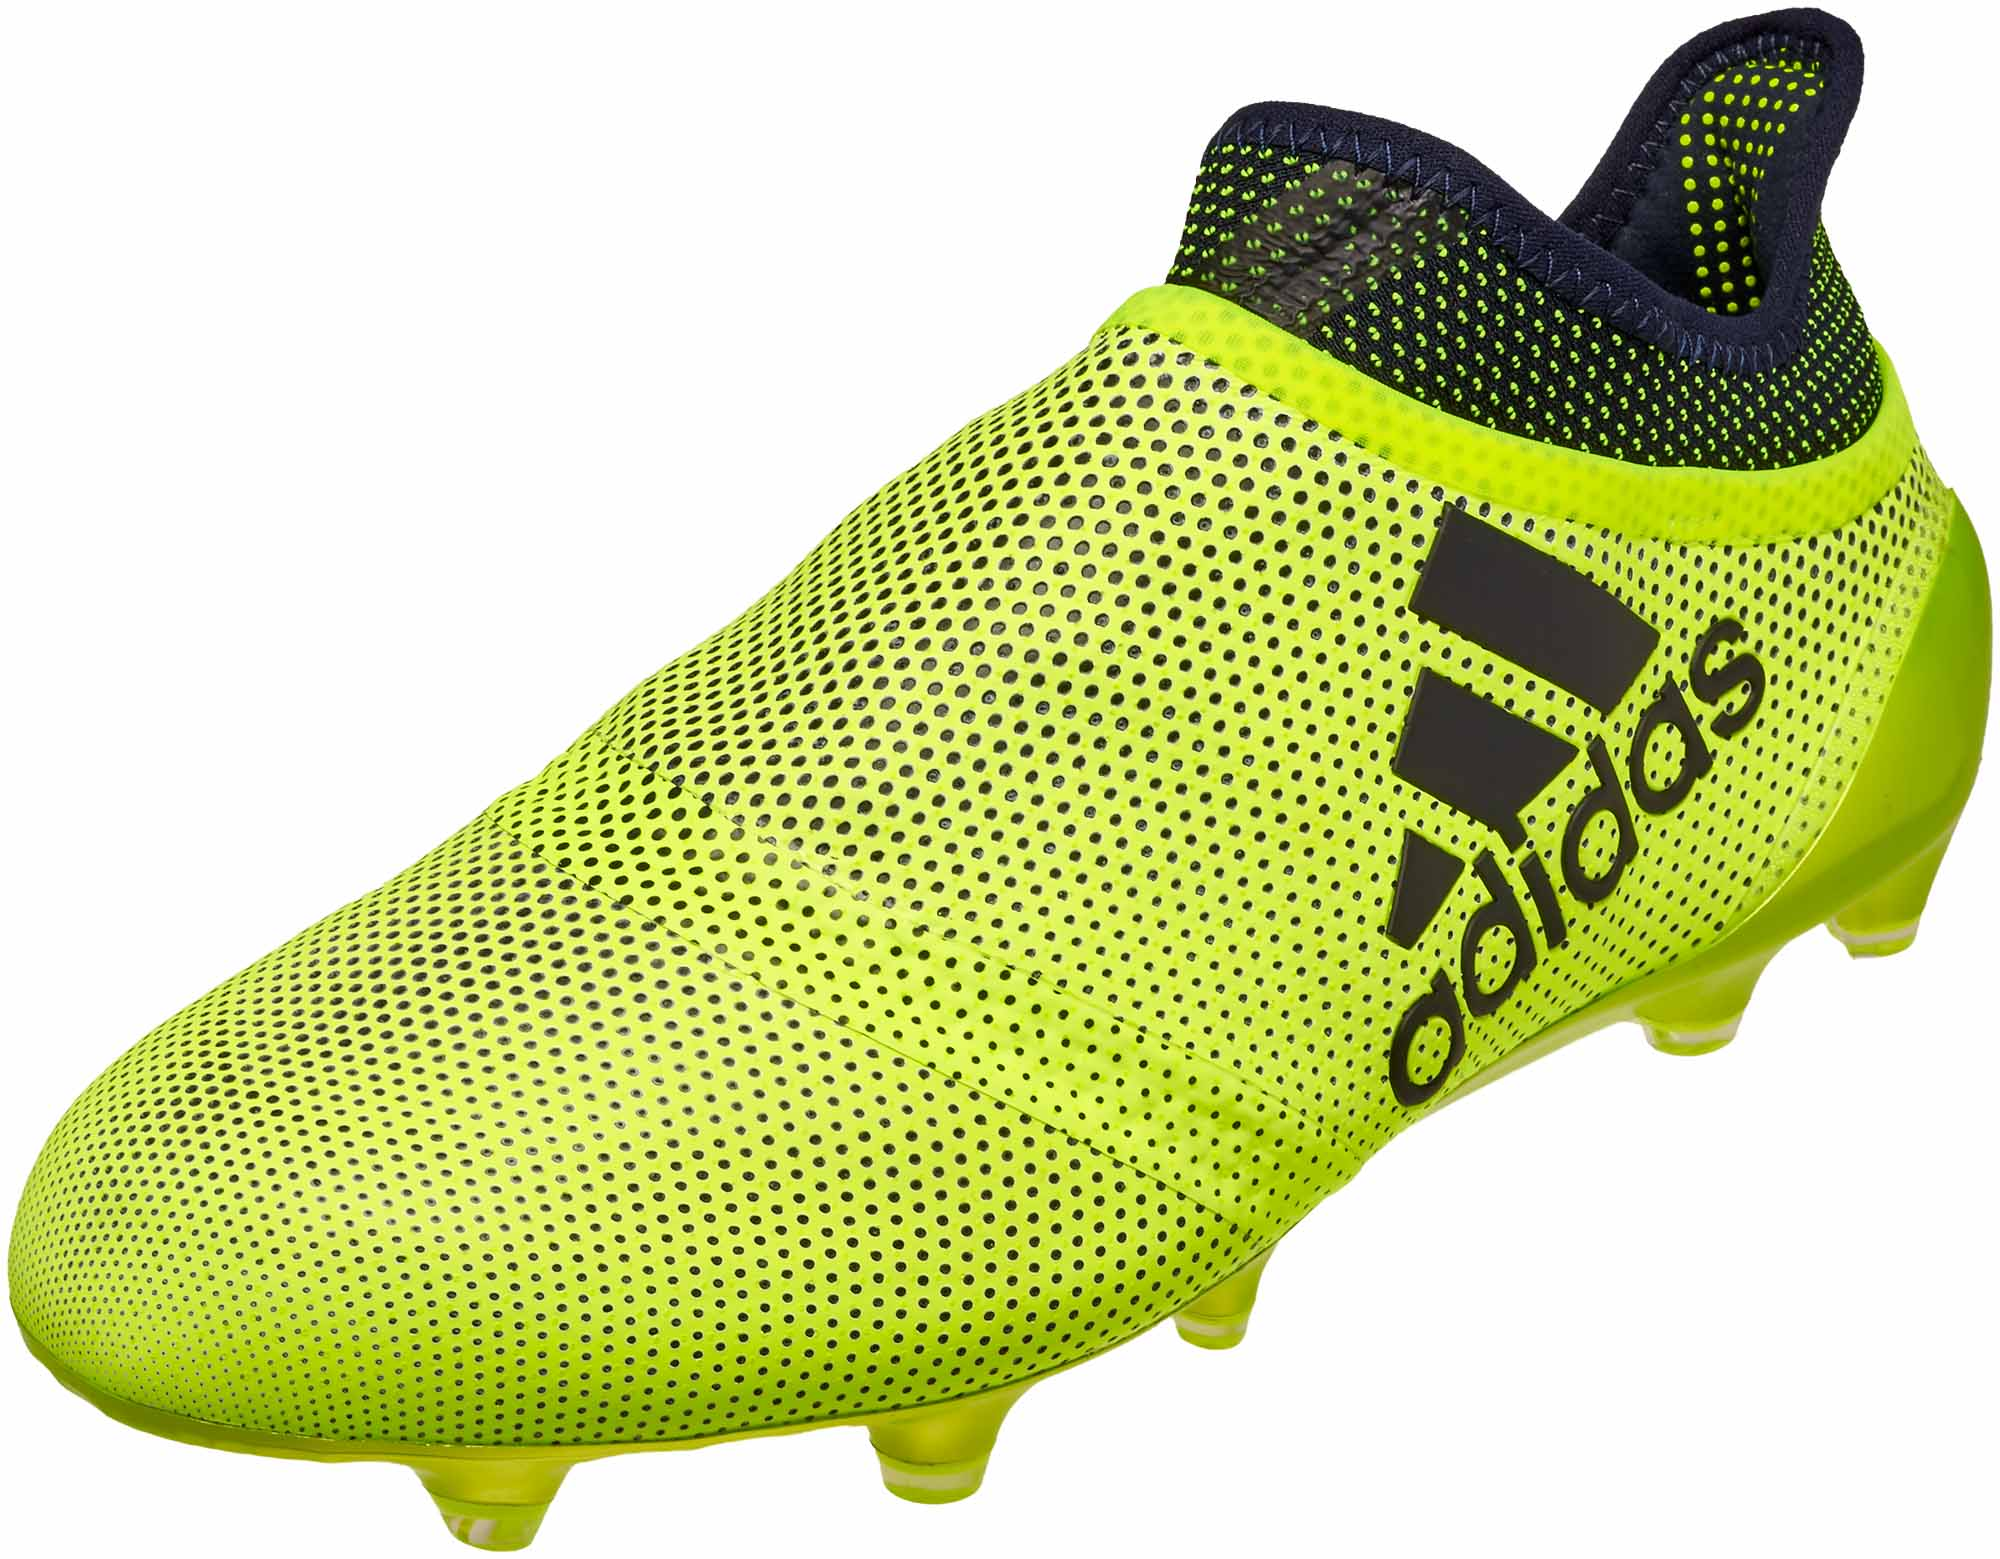 8490c324b adidas X 17 PureSpeed FG - Solar Yellow & Legend Ink